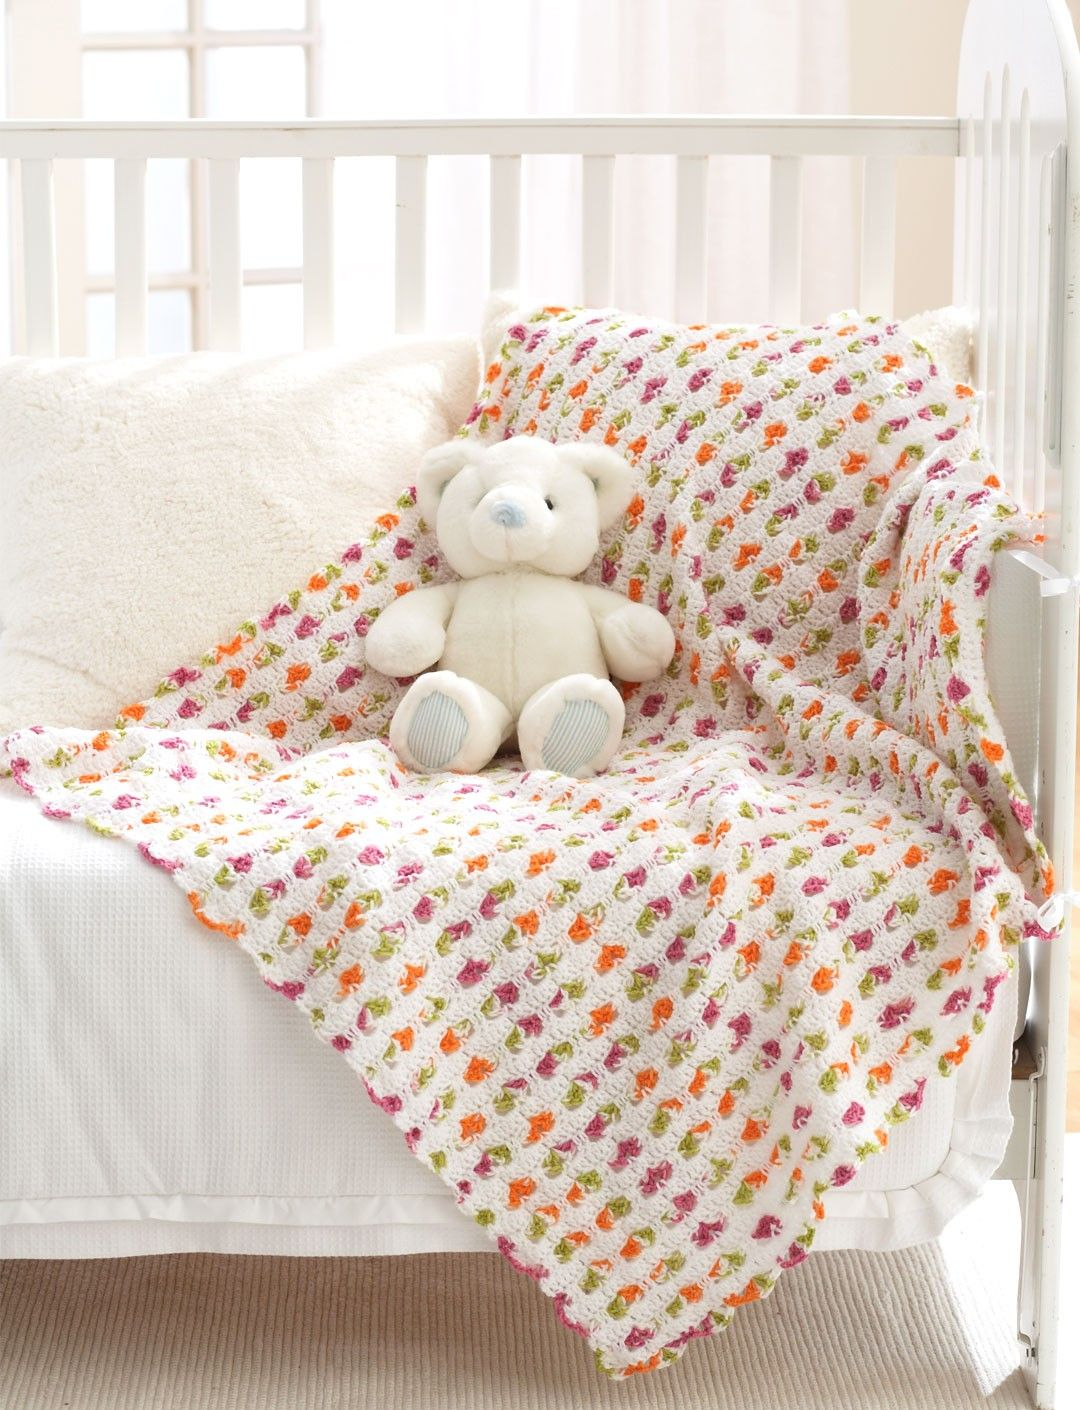 Yarnspirations.com - Bernat Baby Blanket - Patterns | Yarnspirations ...